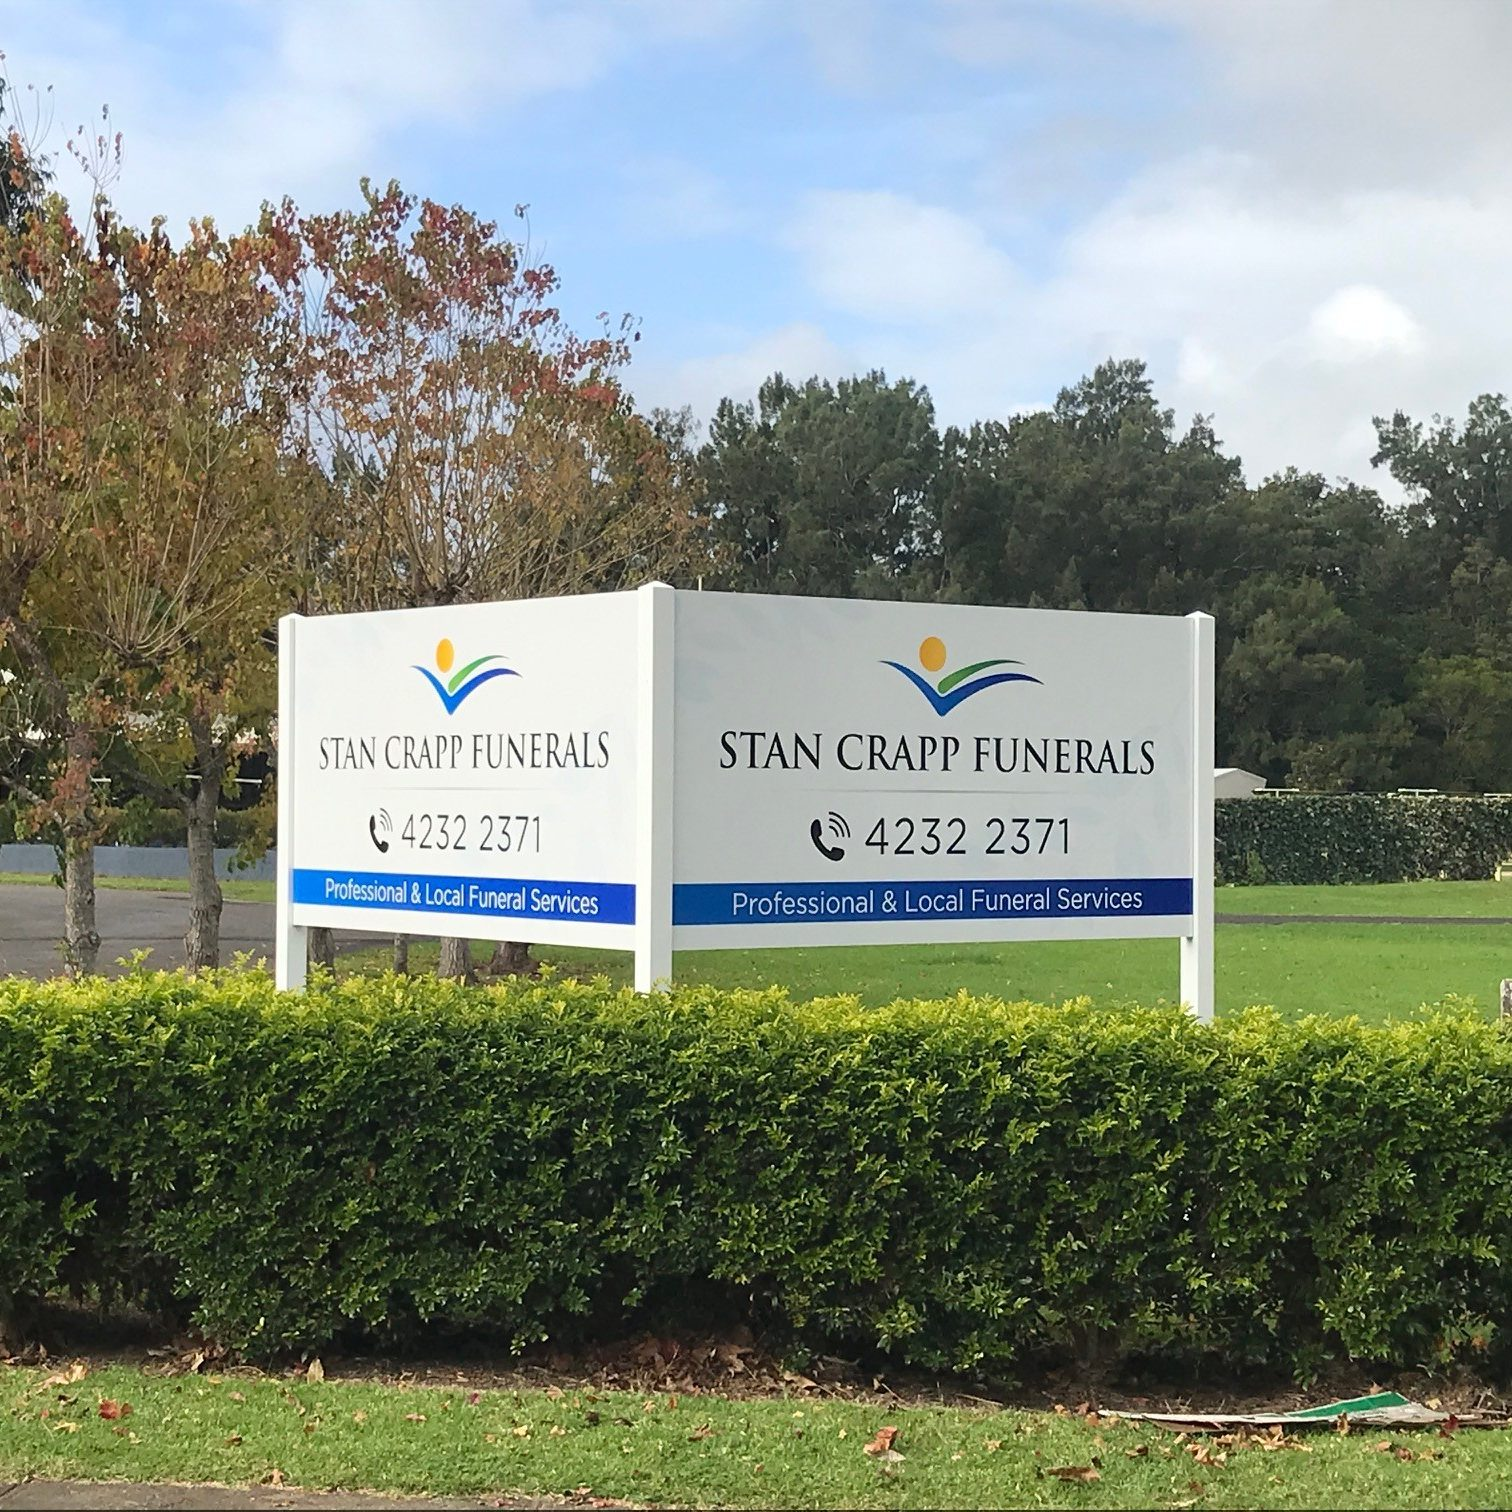 Stan Crapp Funerals Proudly Supports Berry Bowlo